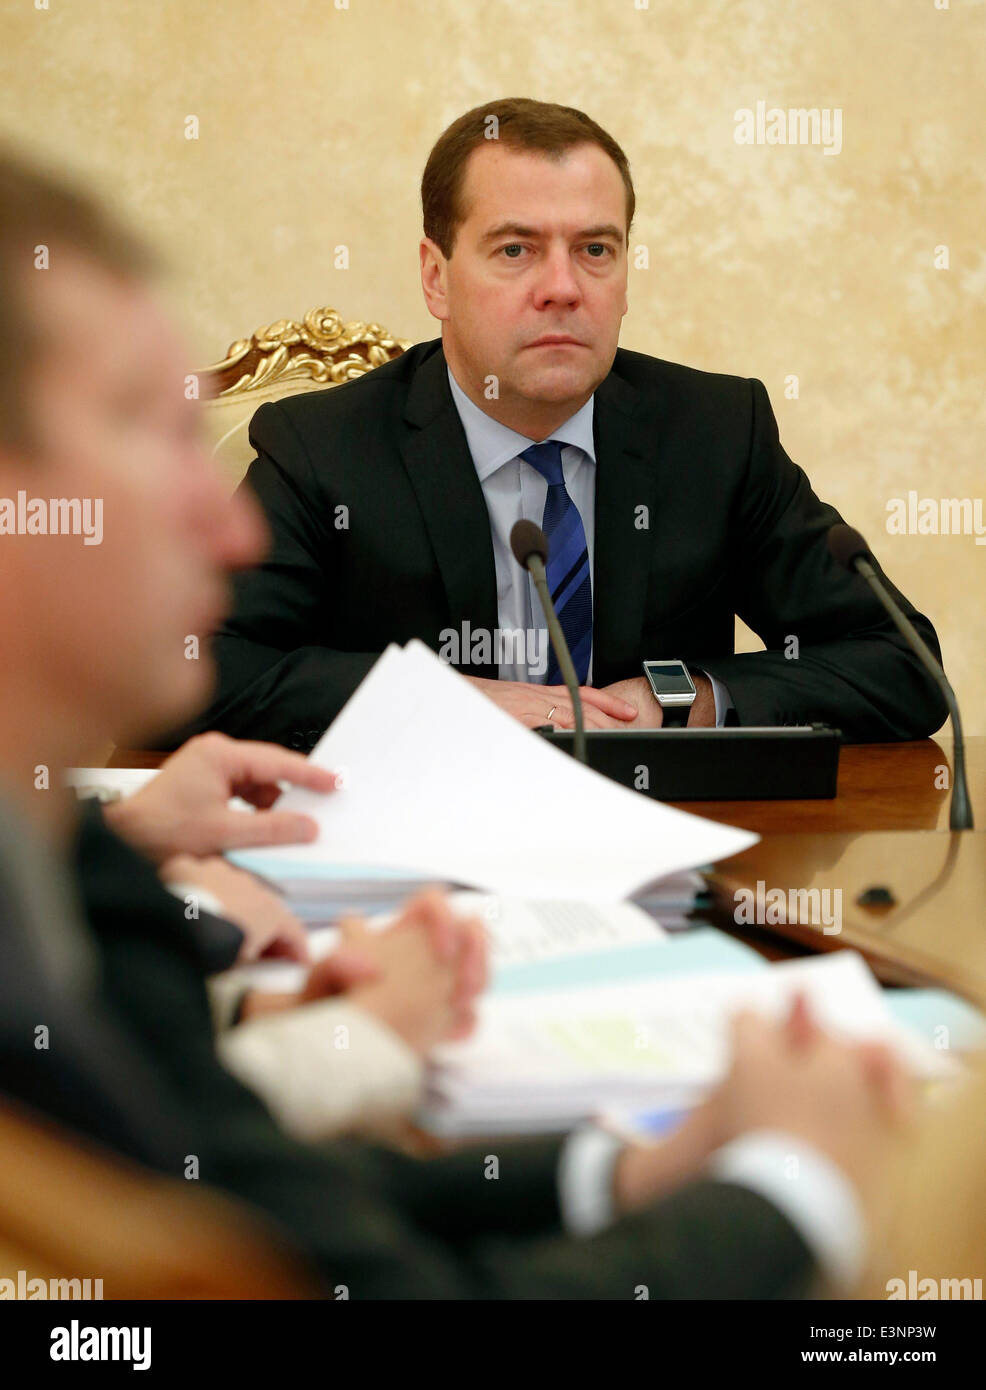 ITAR-TASS: MOSCOW, RUSSIA. JUNE 26, 2014. Russia's prime minister Dmitry Medvedev holds a meeting of the government Stock Photo